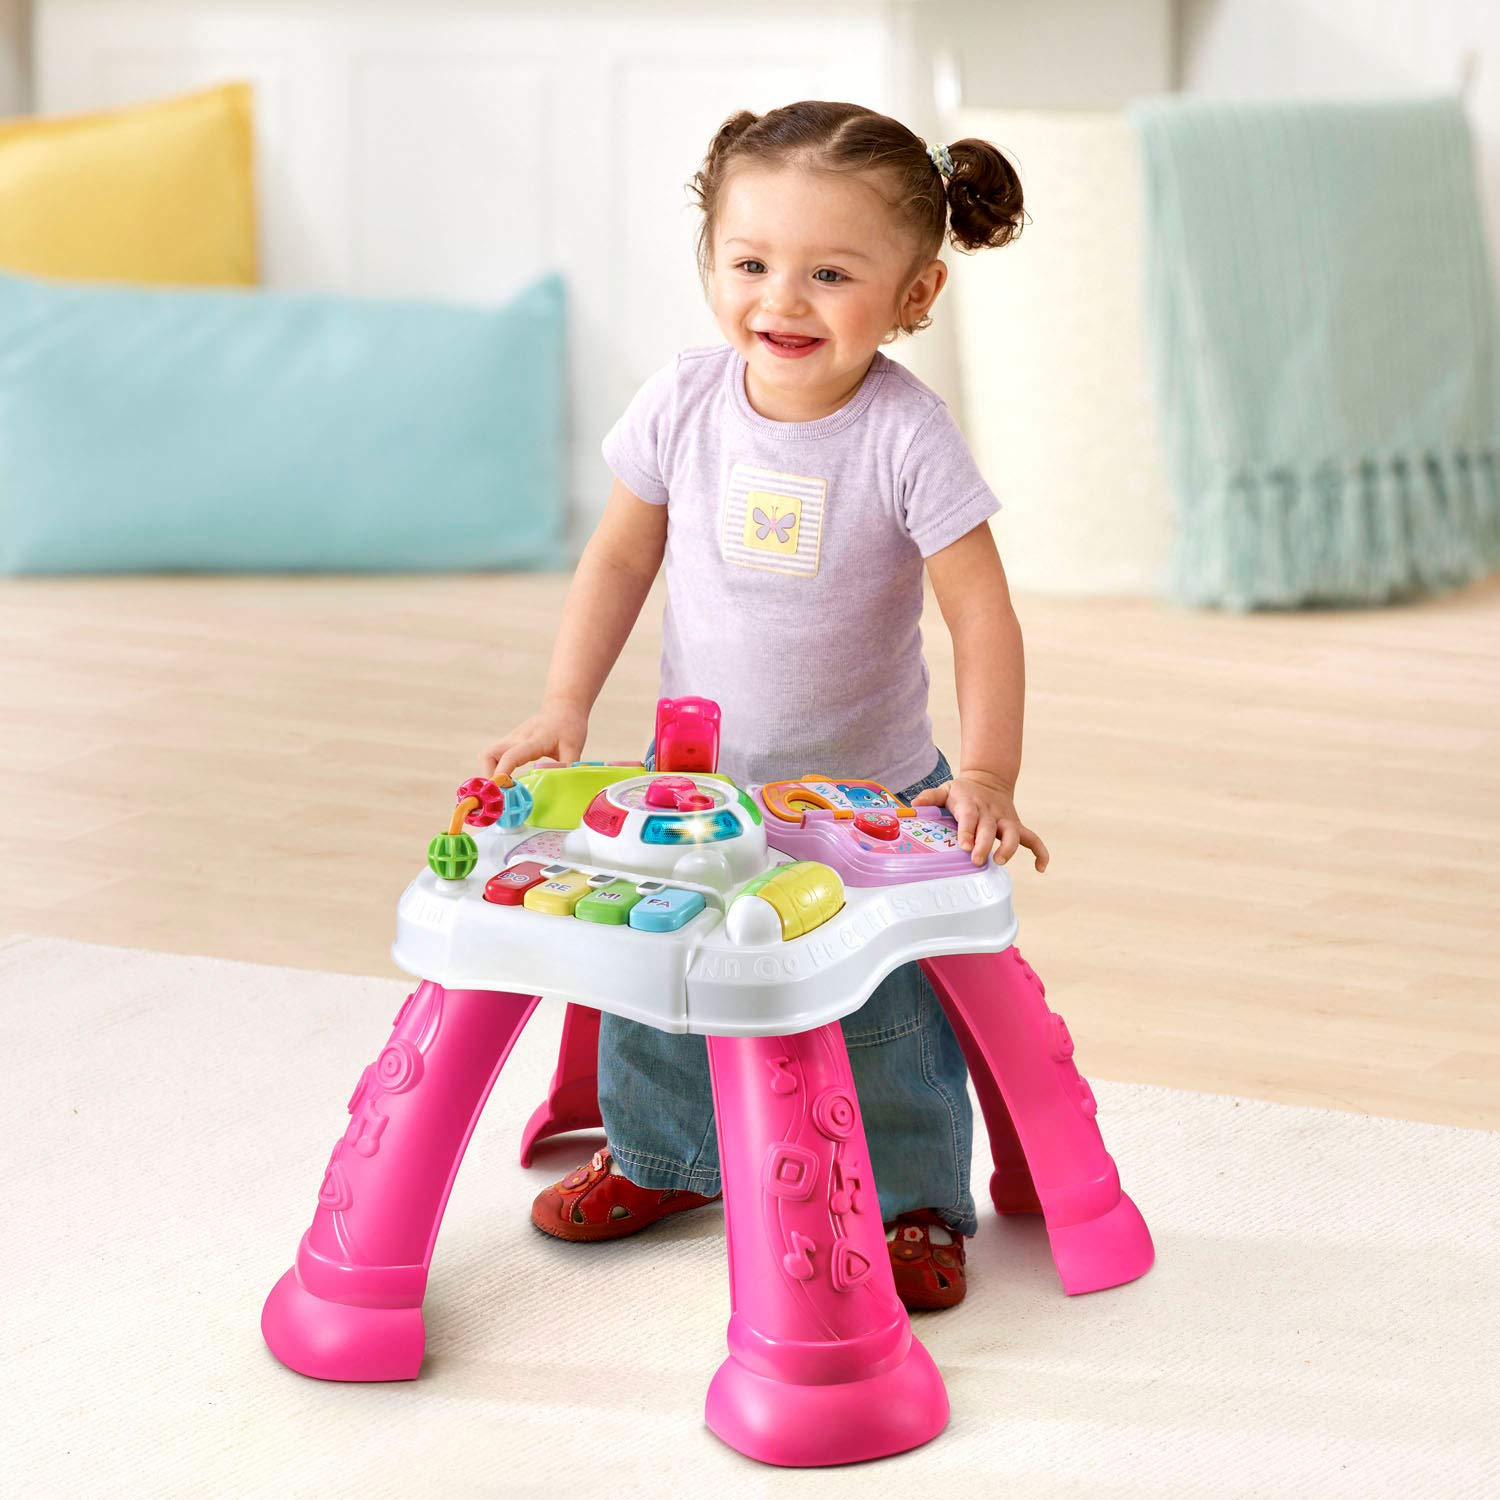 VTech Sit-To-Stand Learn & Discover Table, Pink by VTech (Image #5)